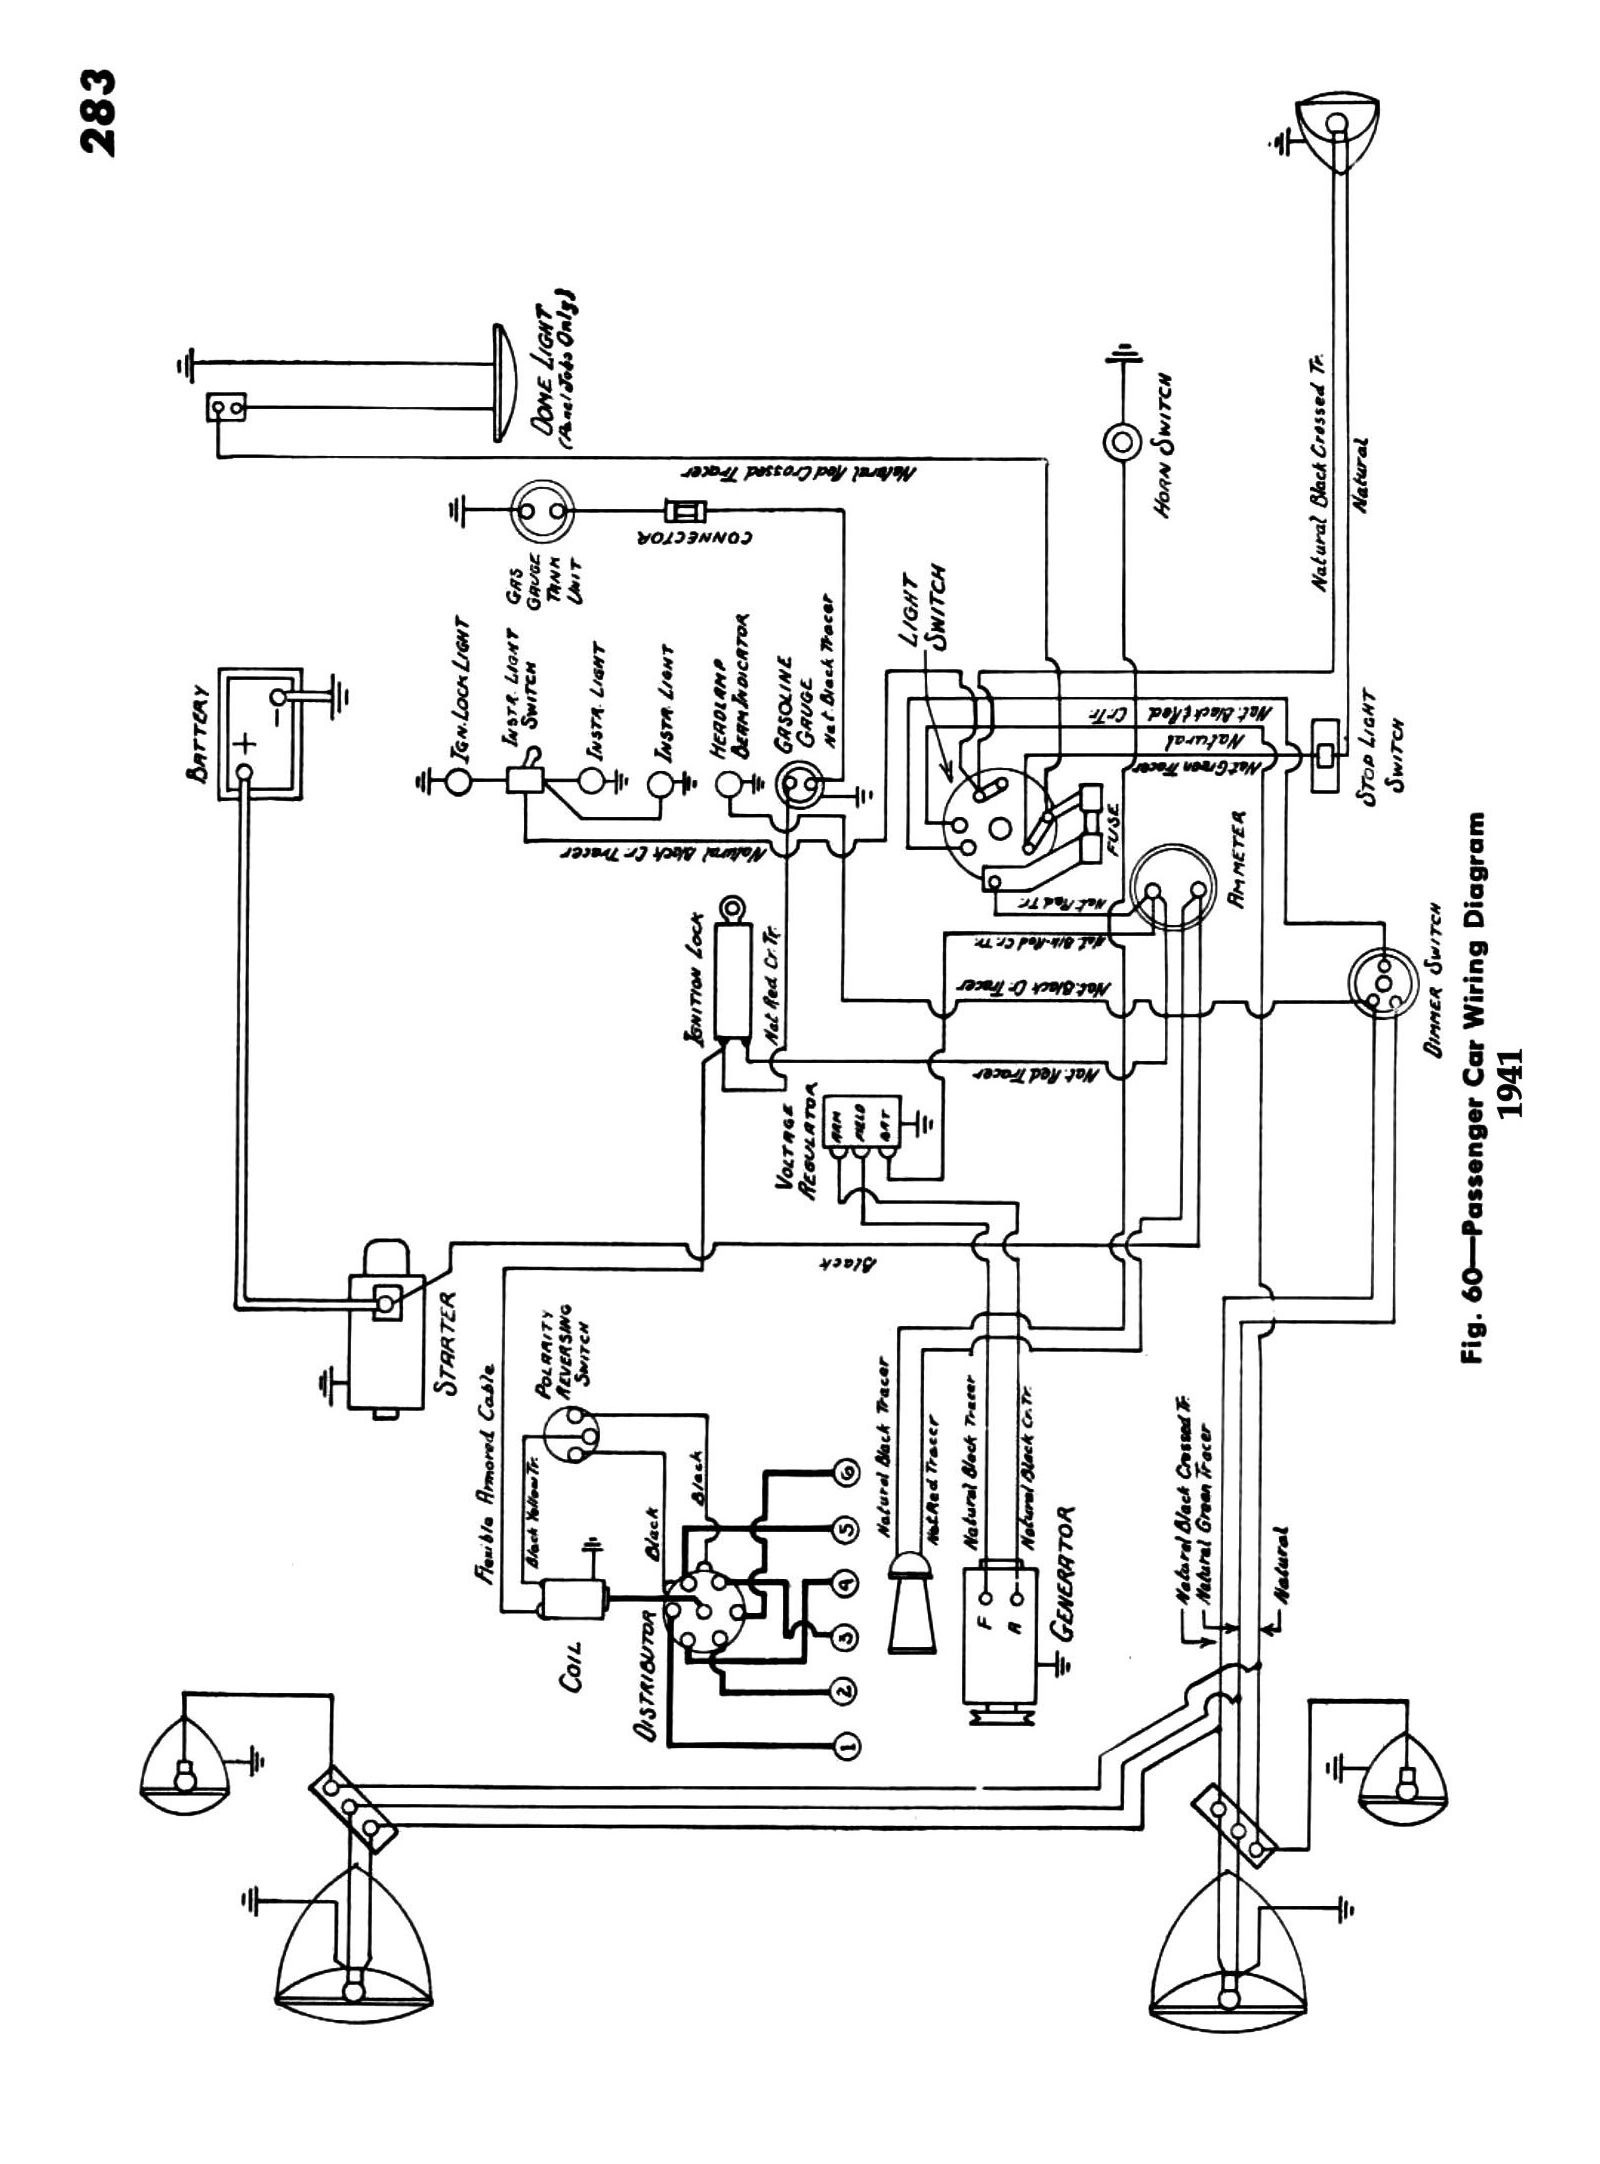 International Pickup Starter Wiring Schematics Modern Design Of 1947 Truck Diagrams 1946 Chevy Ignition Diagram Schematic Data Rh 3 Hvacgroup Eu Solenoid